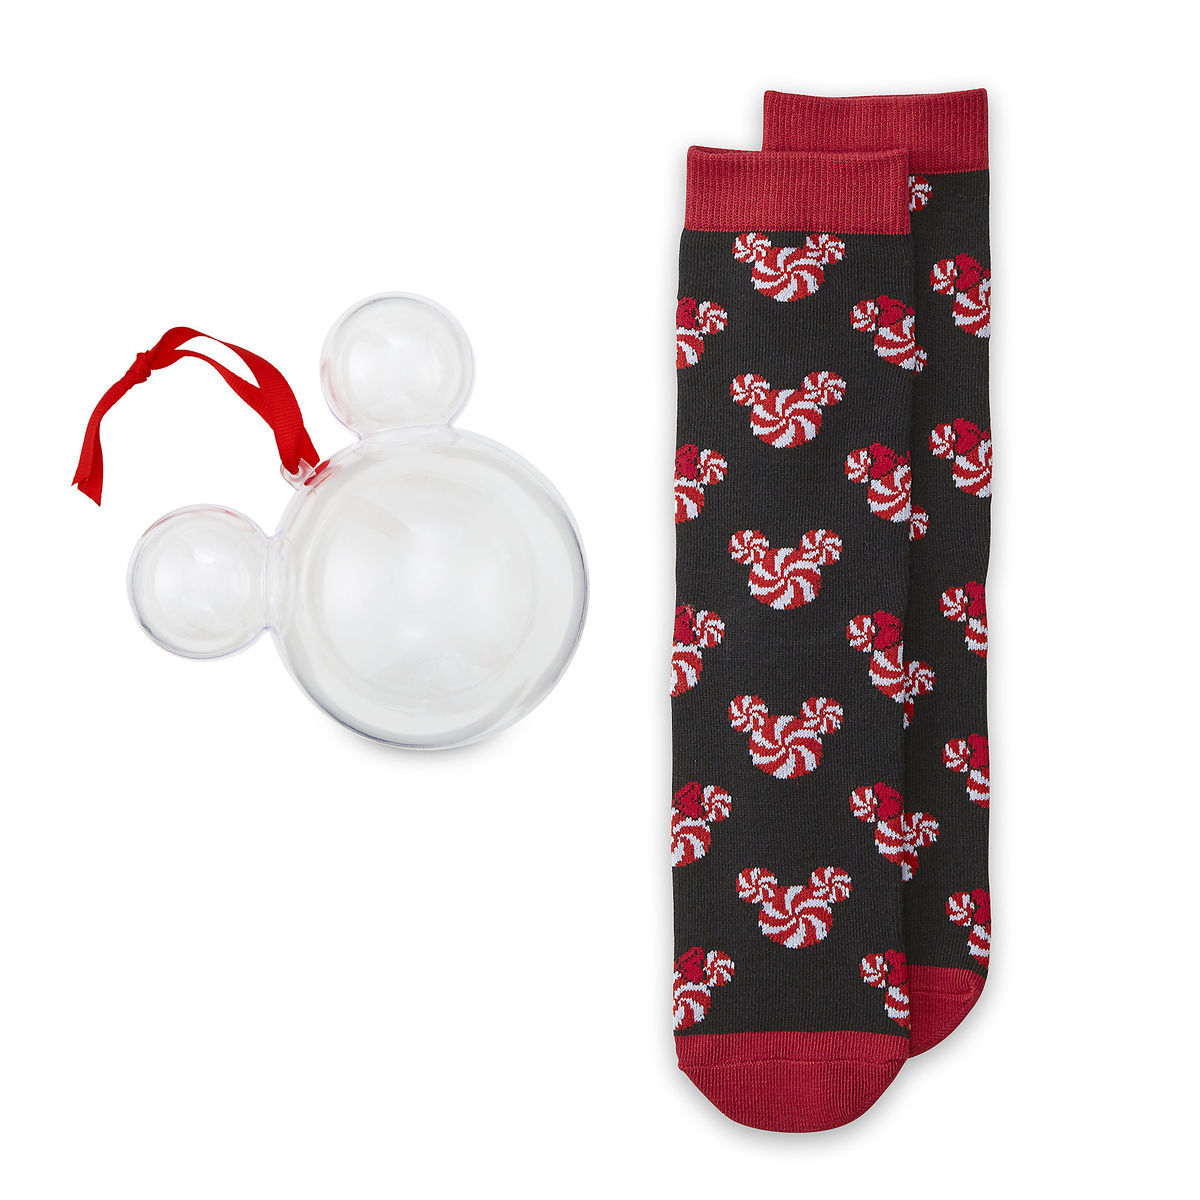 Product Image of Mickey and Minnie Mouse Holiday Candy Socks in Ornament for Adults # 1